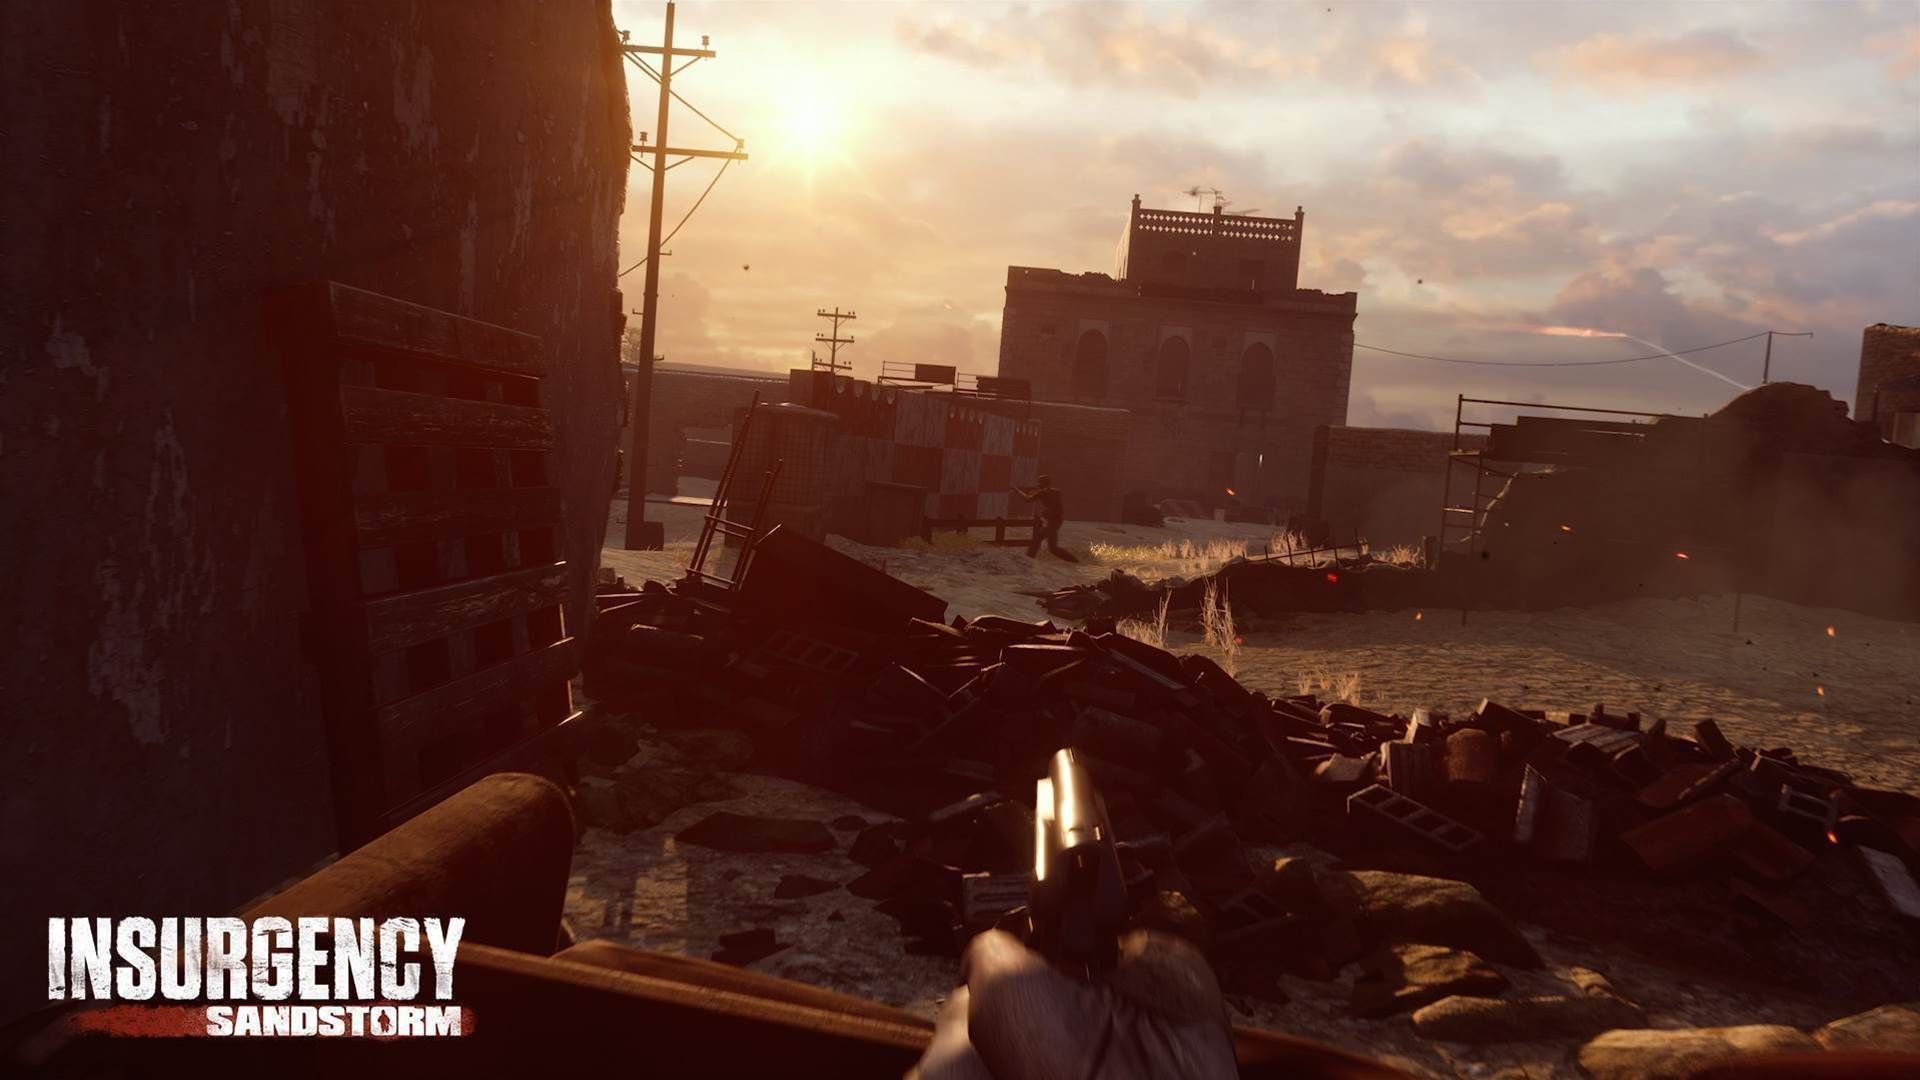 Six new screens from Insurgency: Sandstorm